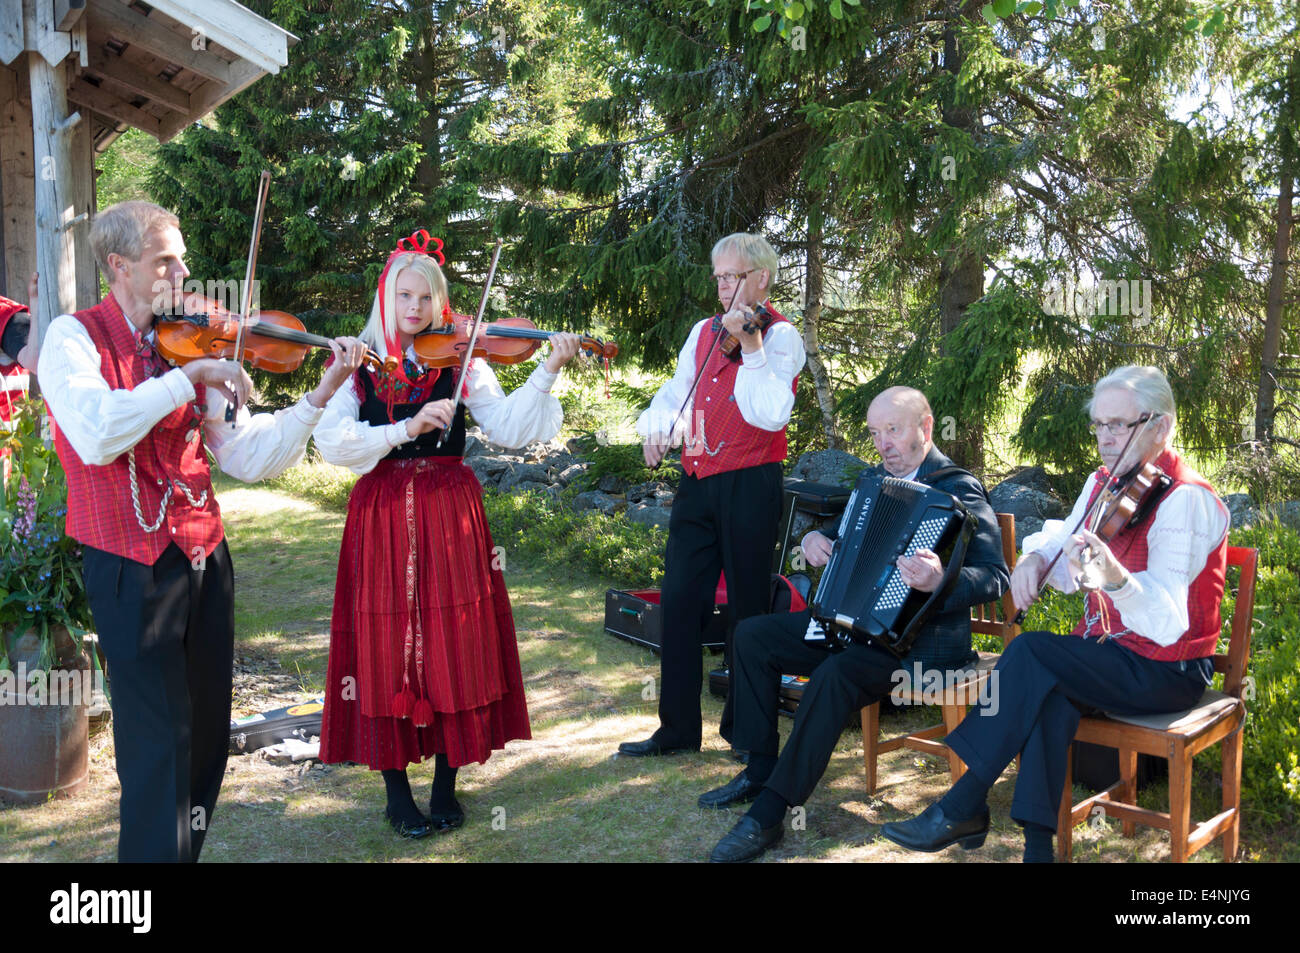 Folk music musician's playing at a birthday party. - Stock Image